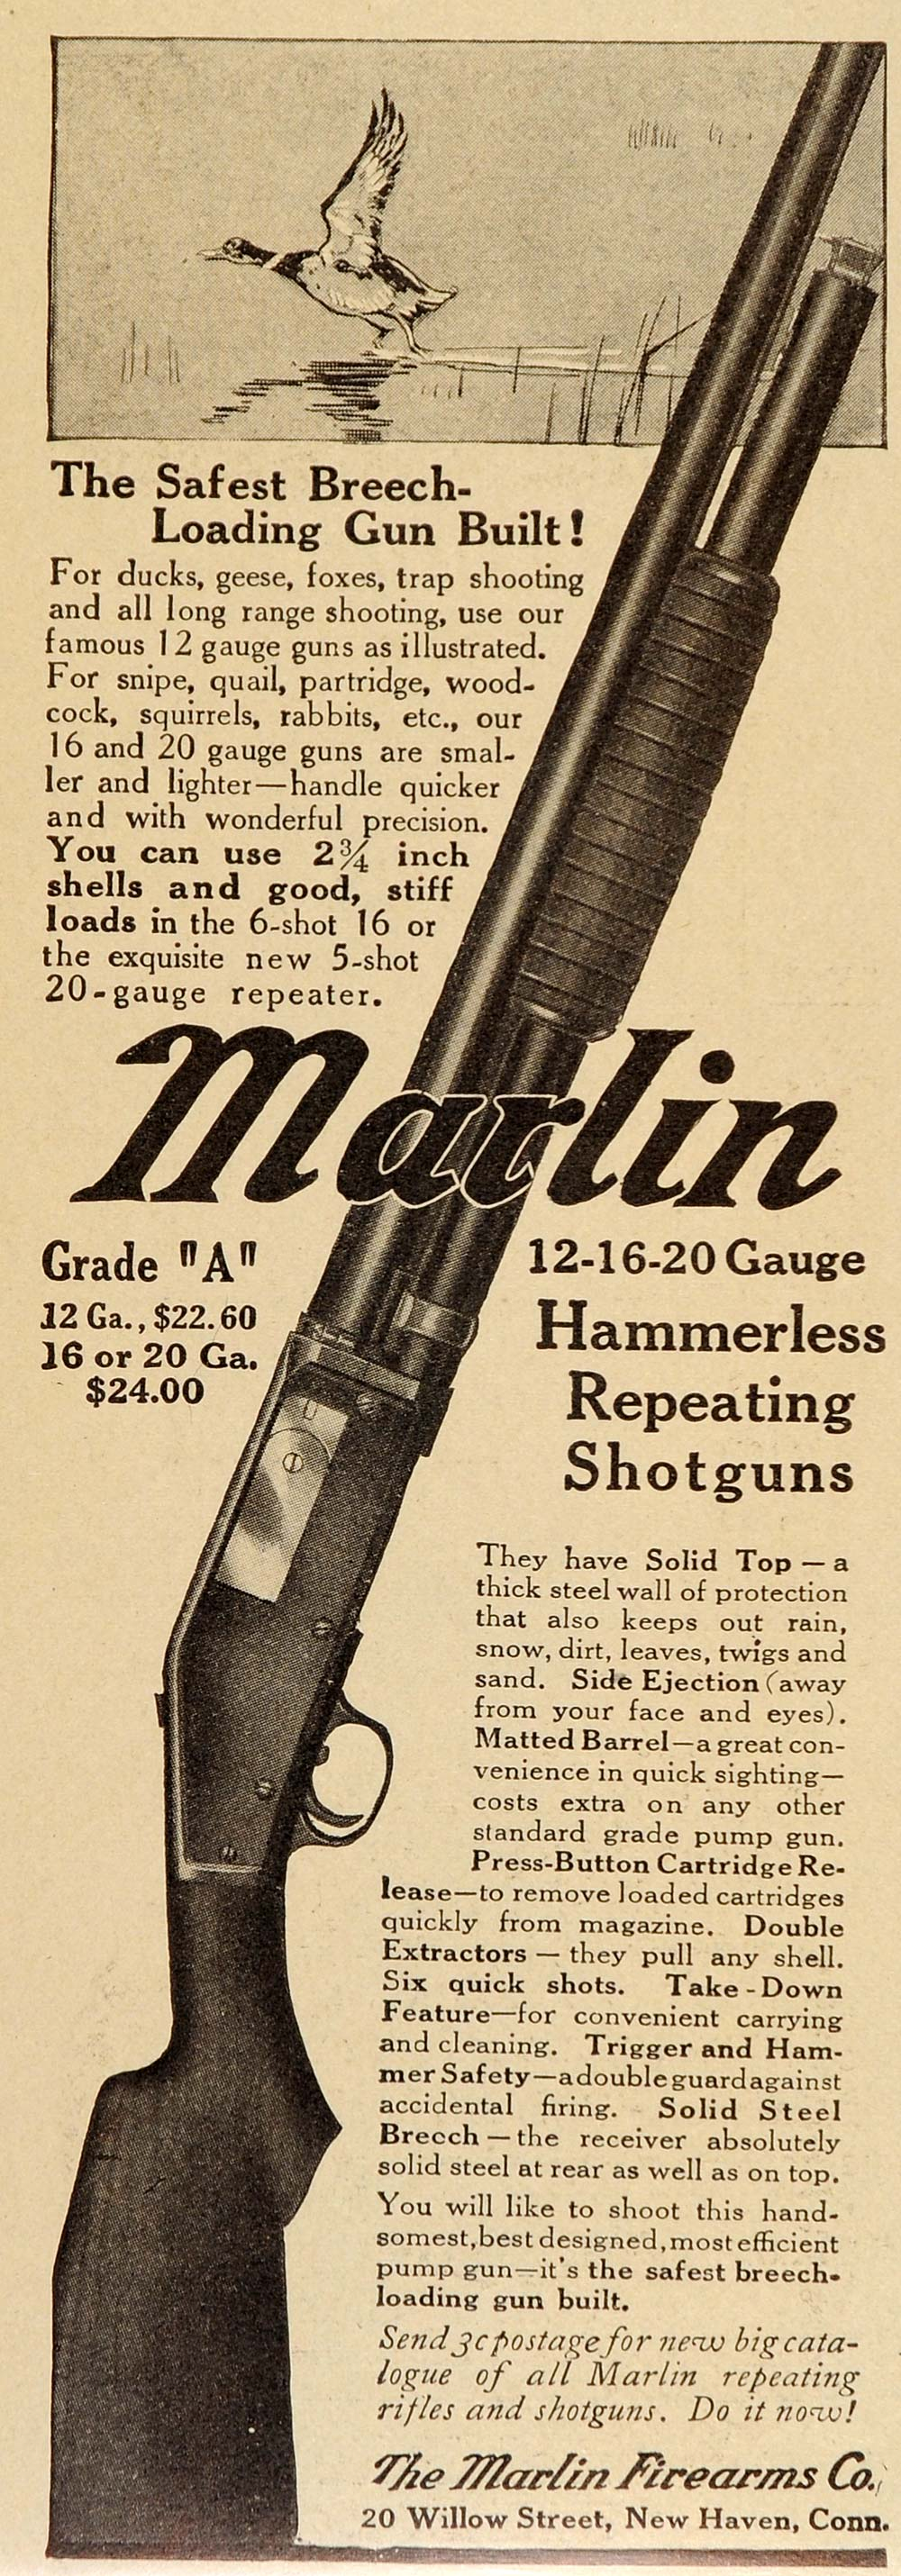 1914 Vintage Ad Marlin 12-16-20 Gauge Repeating Shotgun - ORIGINAL OLD7